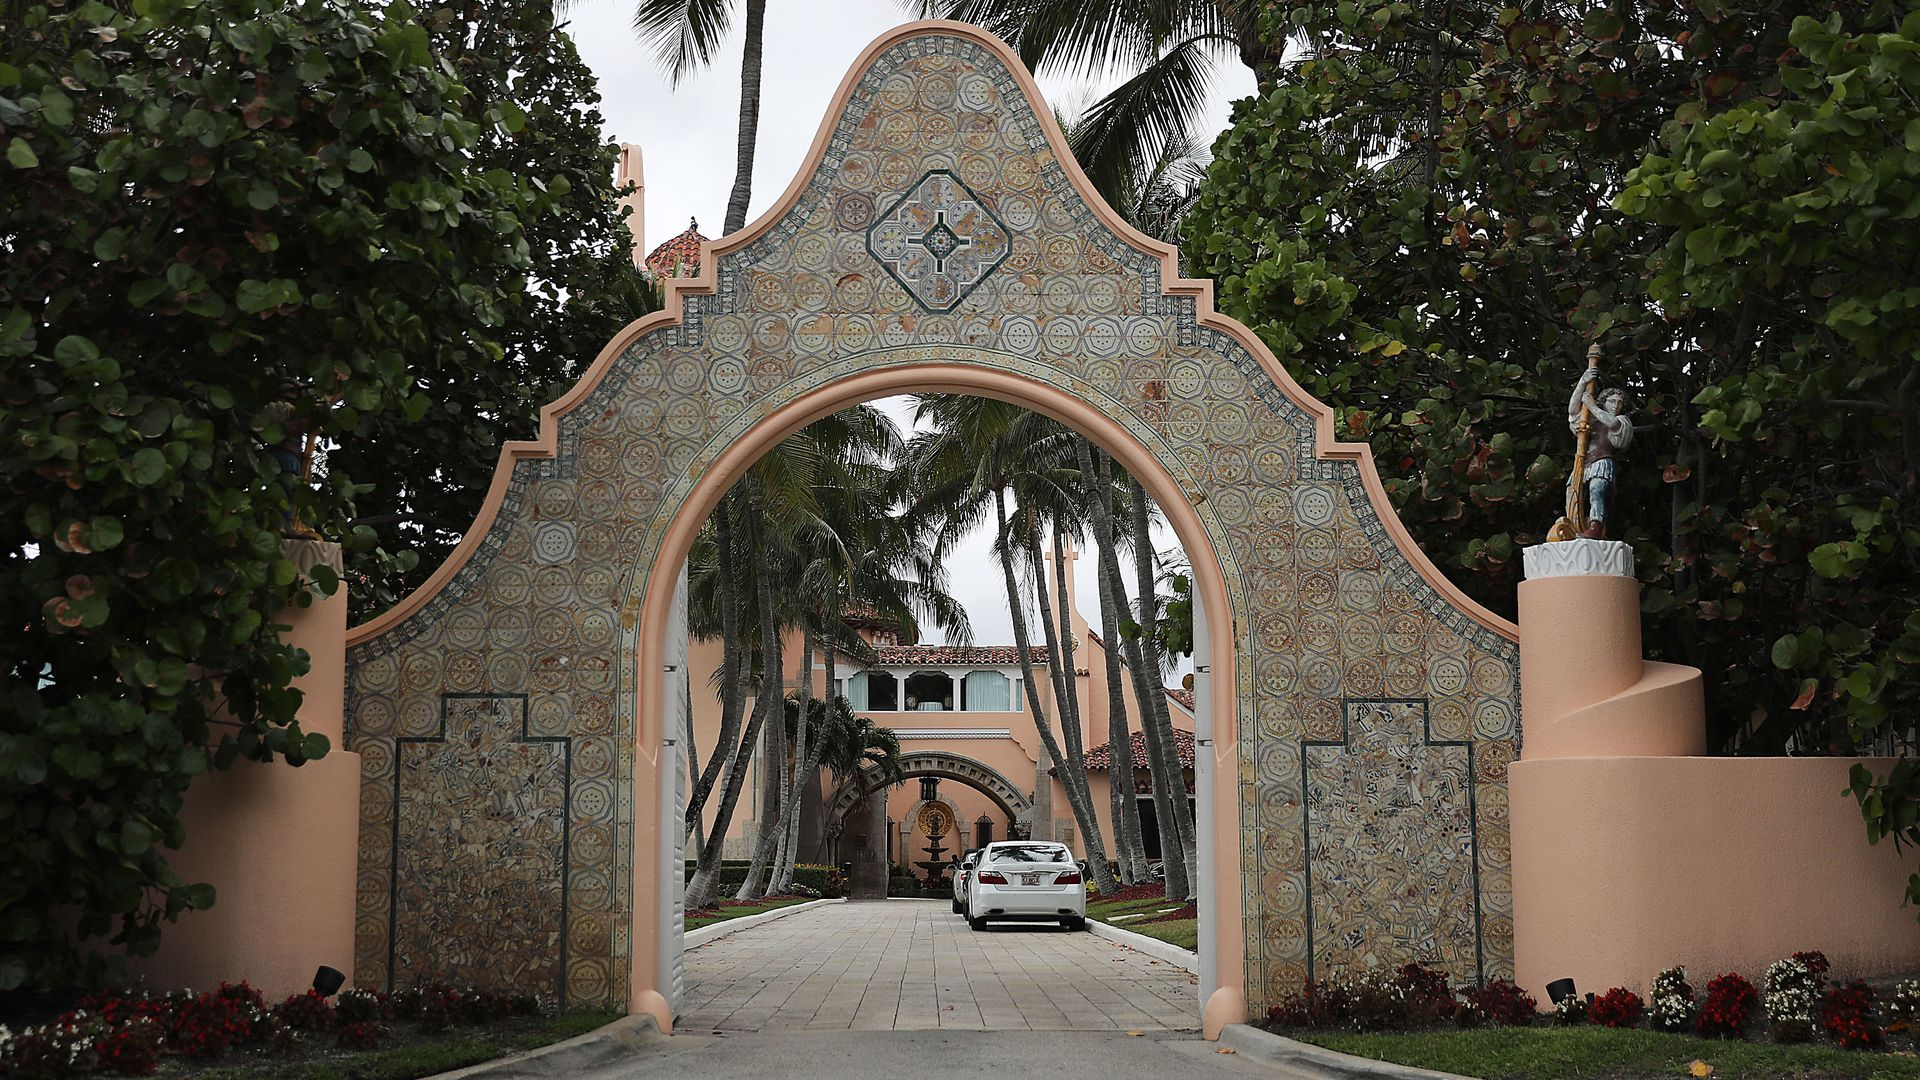 This image shows a stone entranceway to Mar-a-lago, framed by palm trees.